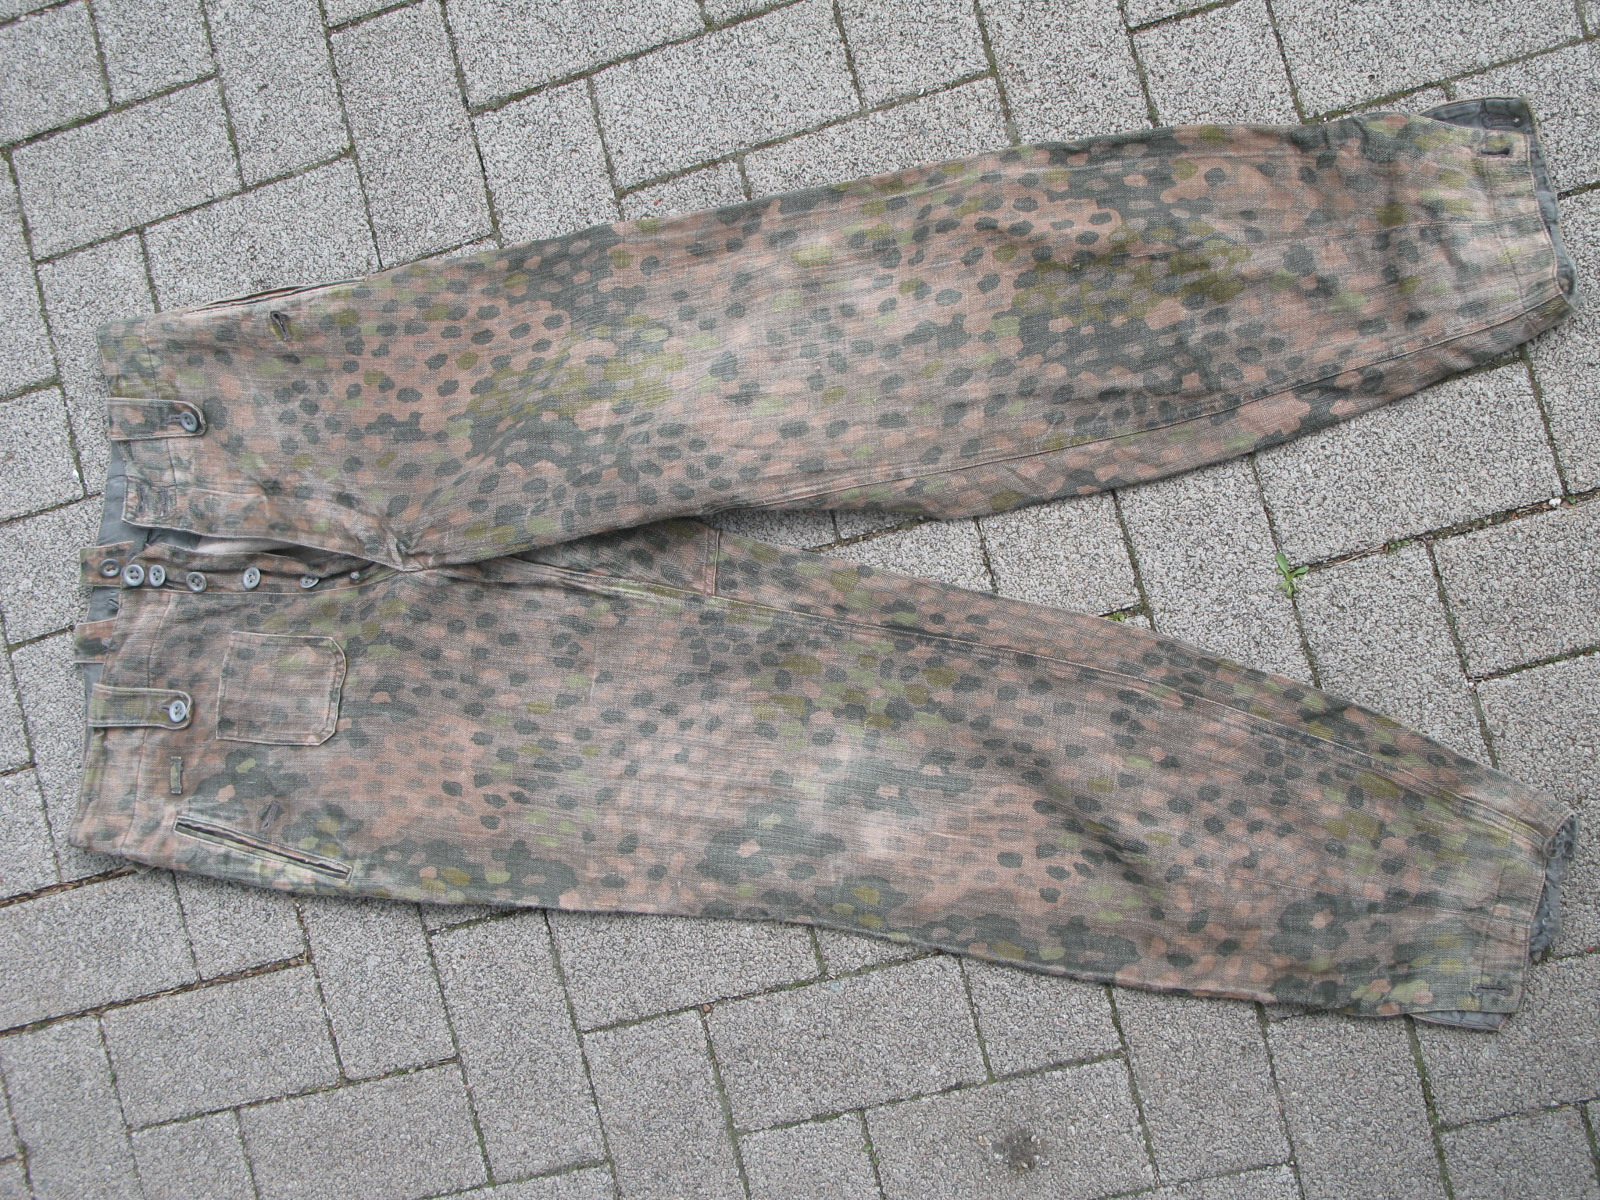 813-deutsche-Uniform-Tarn-Hose-camo